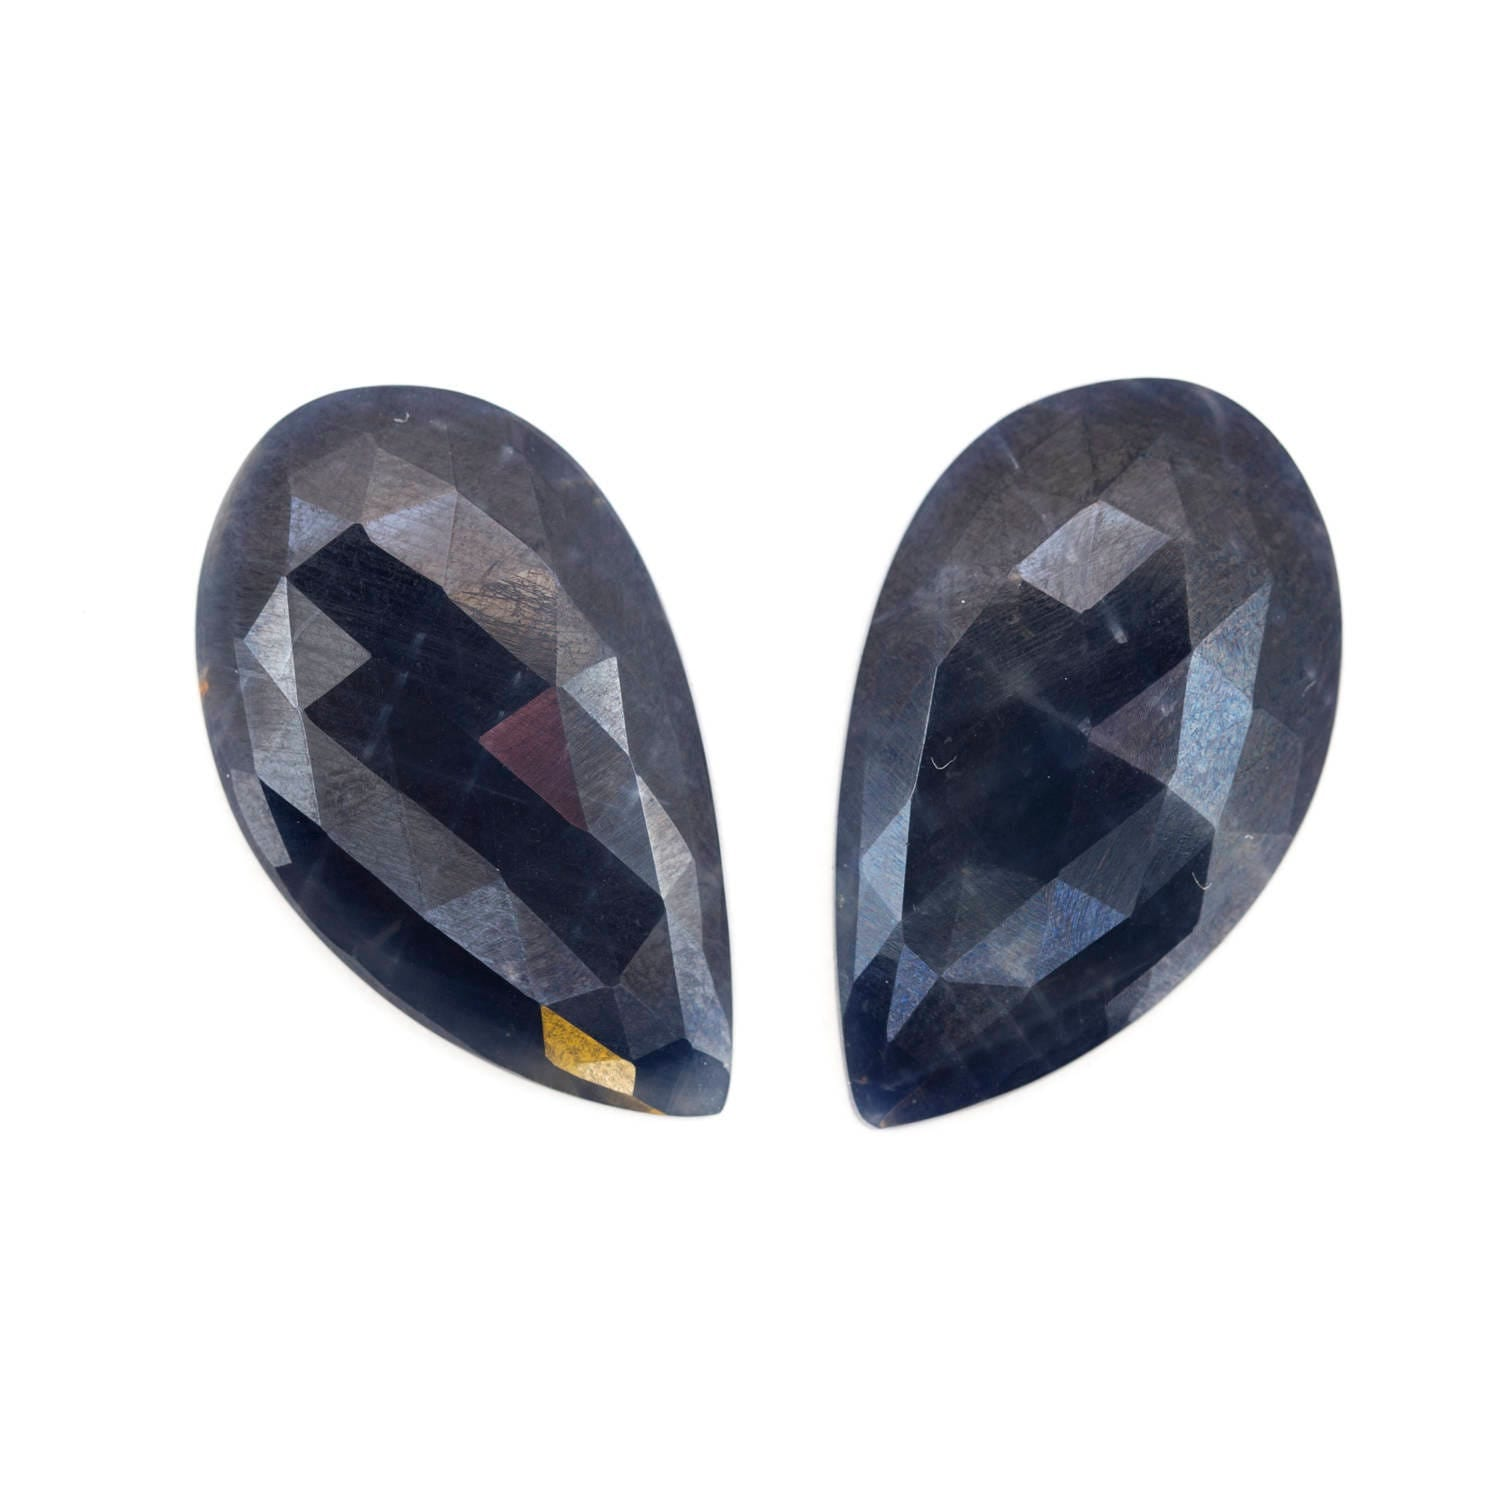 panel island products blue less navy cap gemstone lrg stone